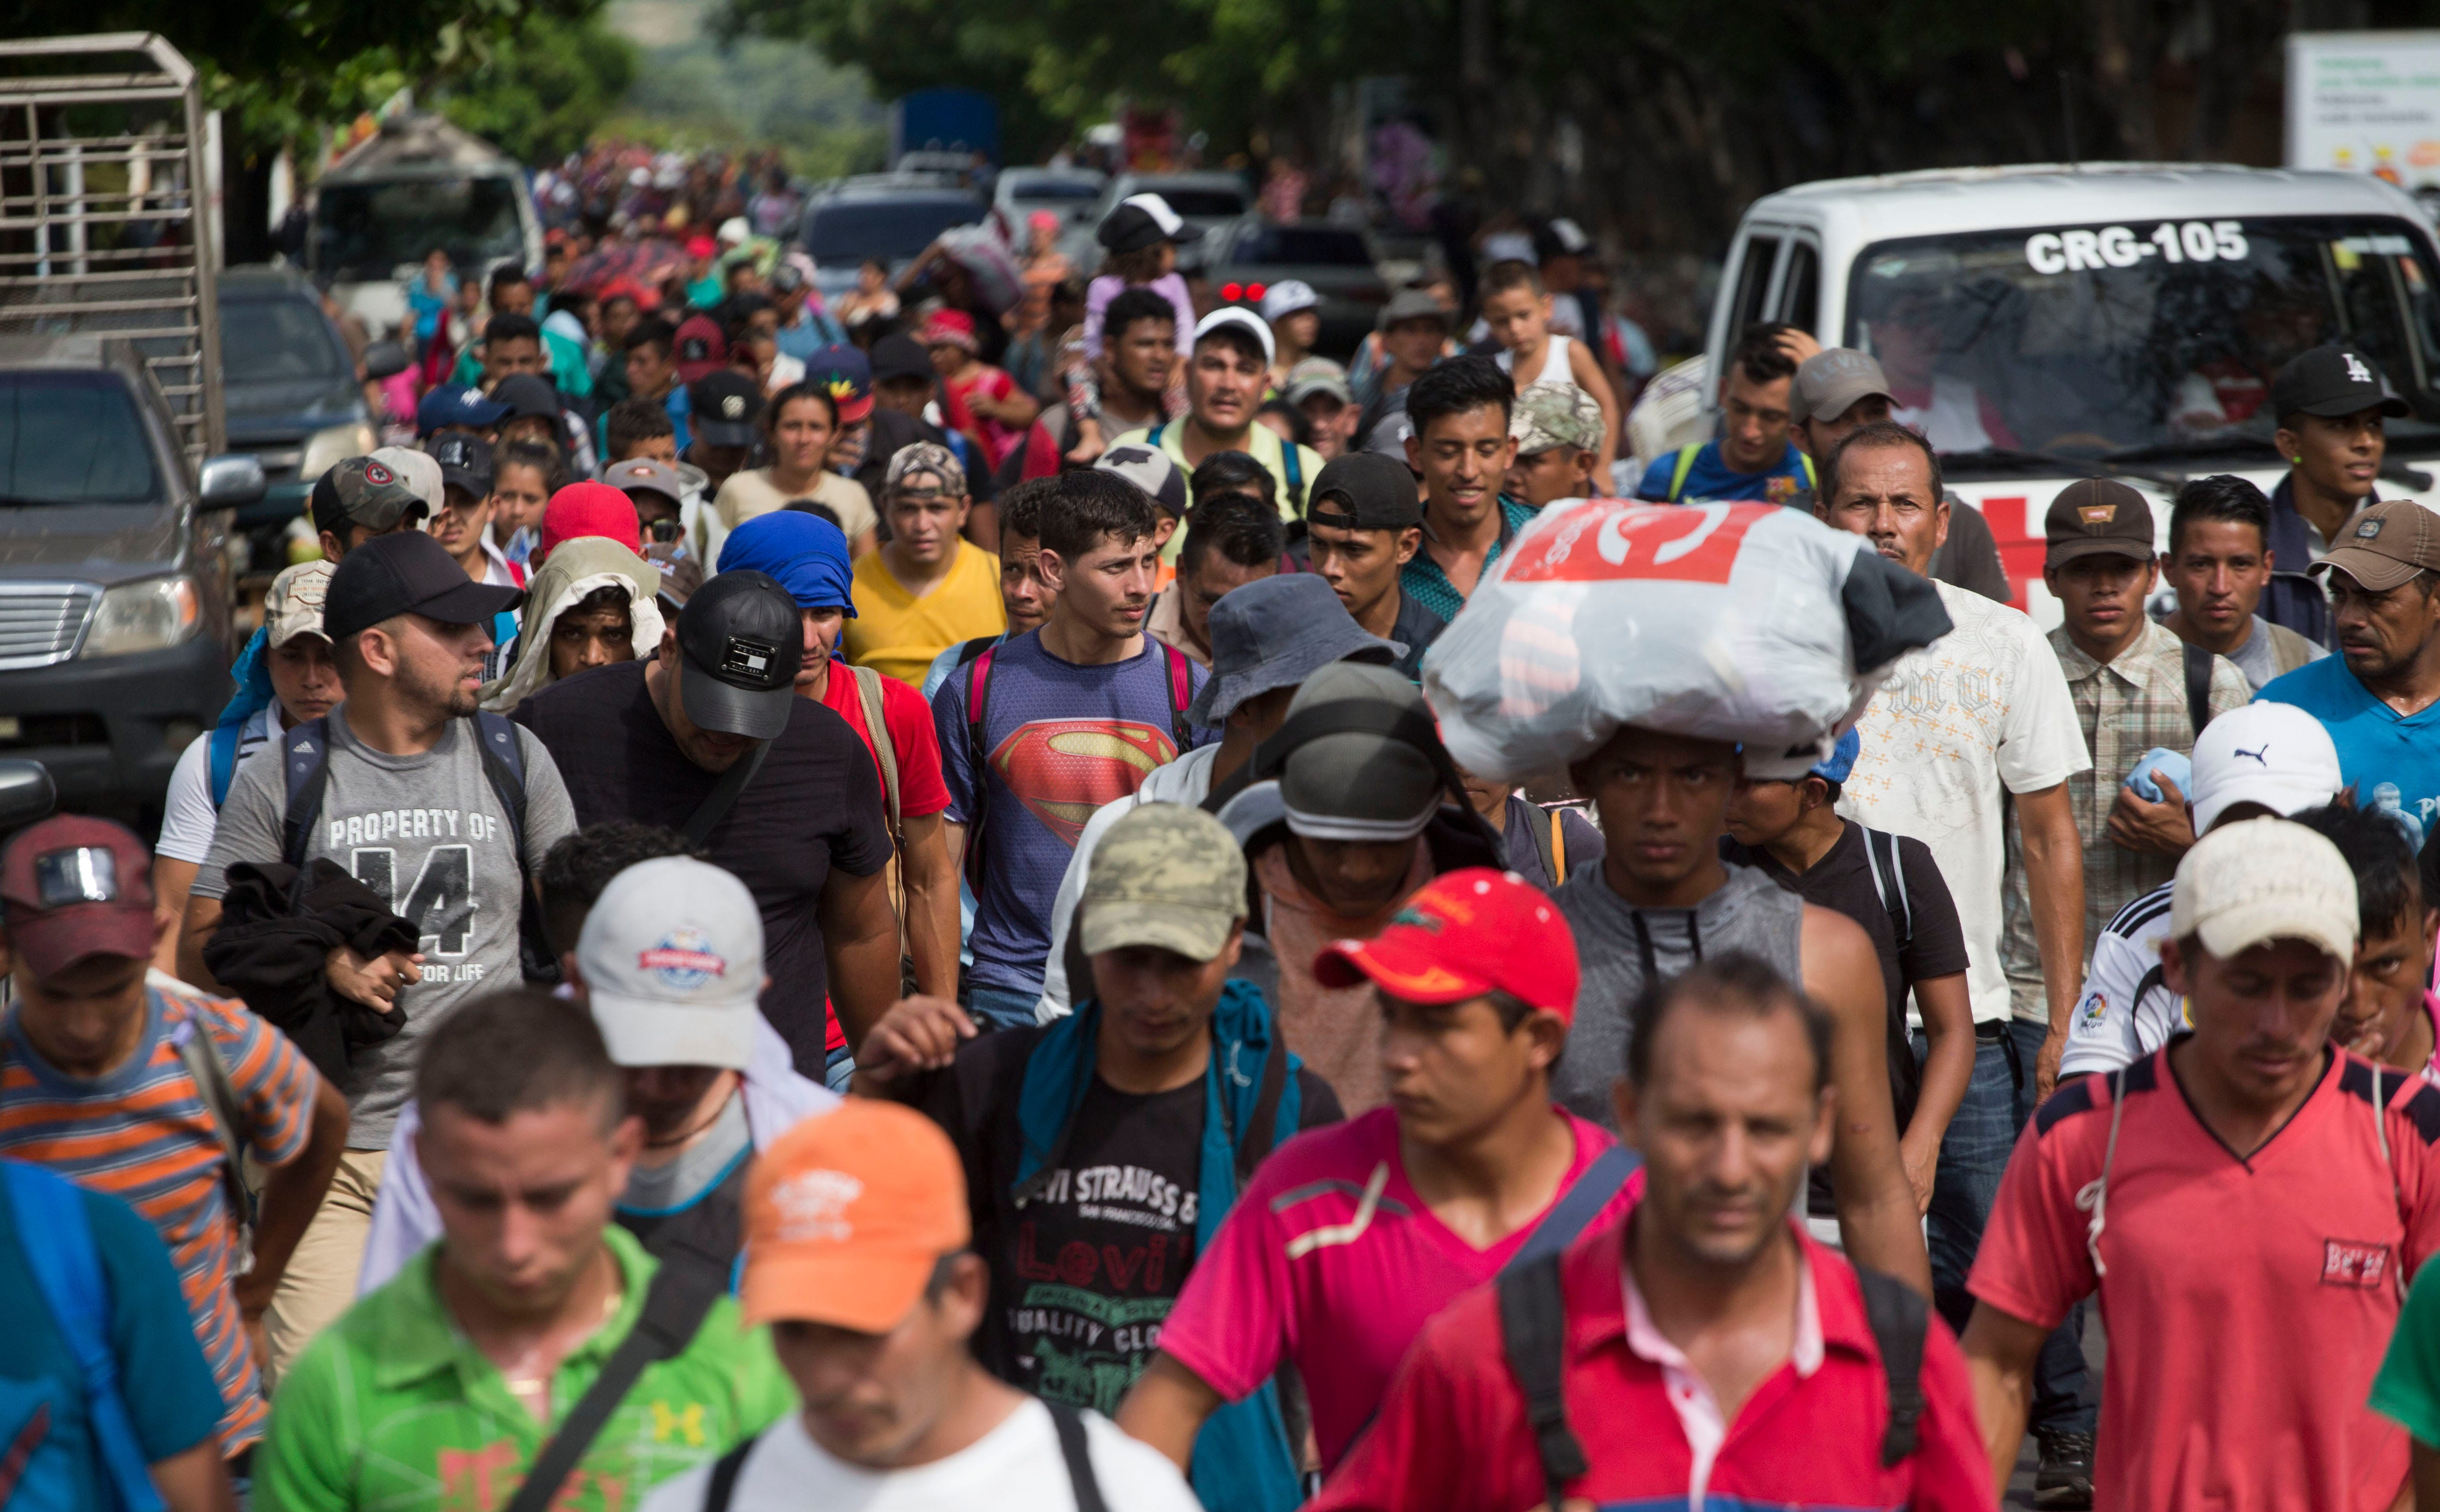 U.S., Mexico officials working together to turn away asylum seekers, lawsuit alleges